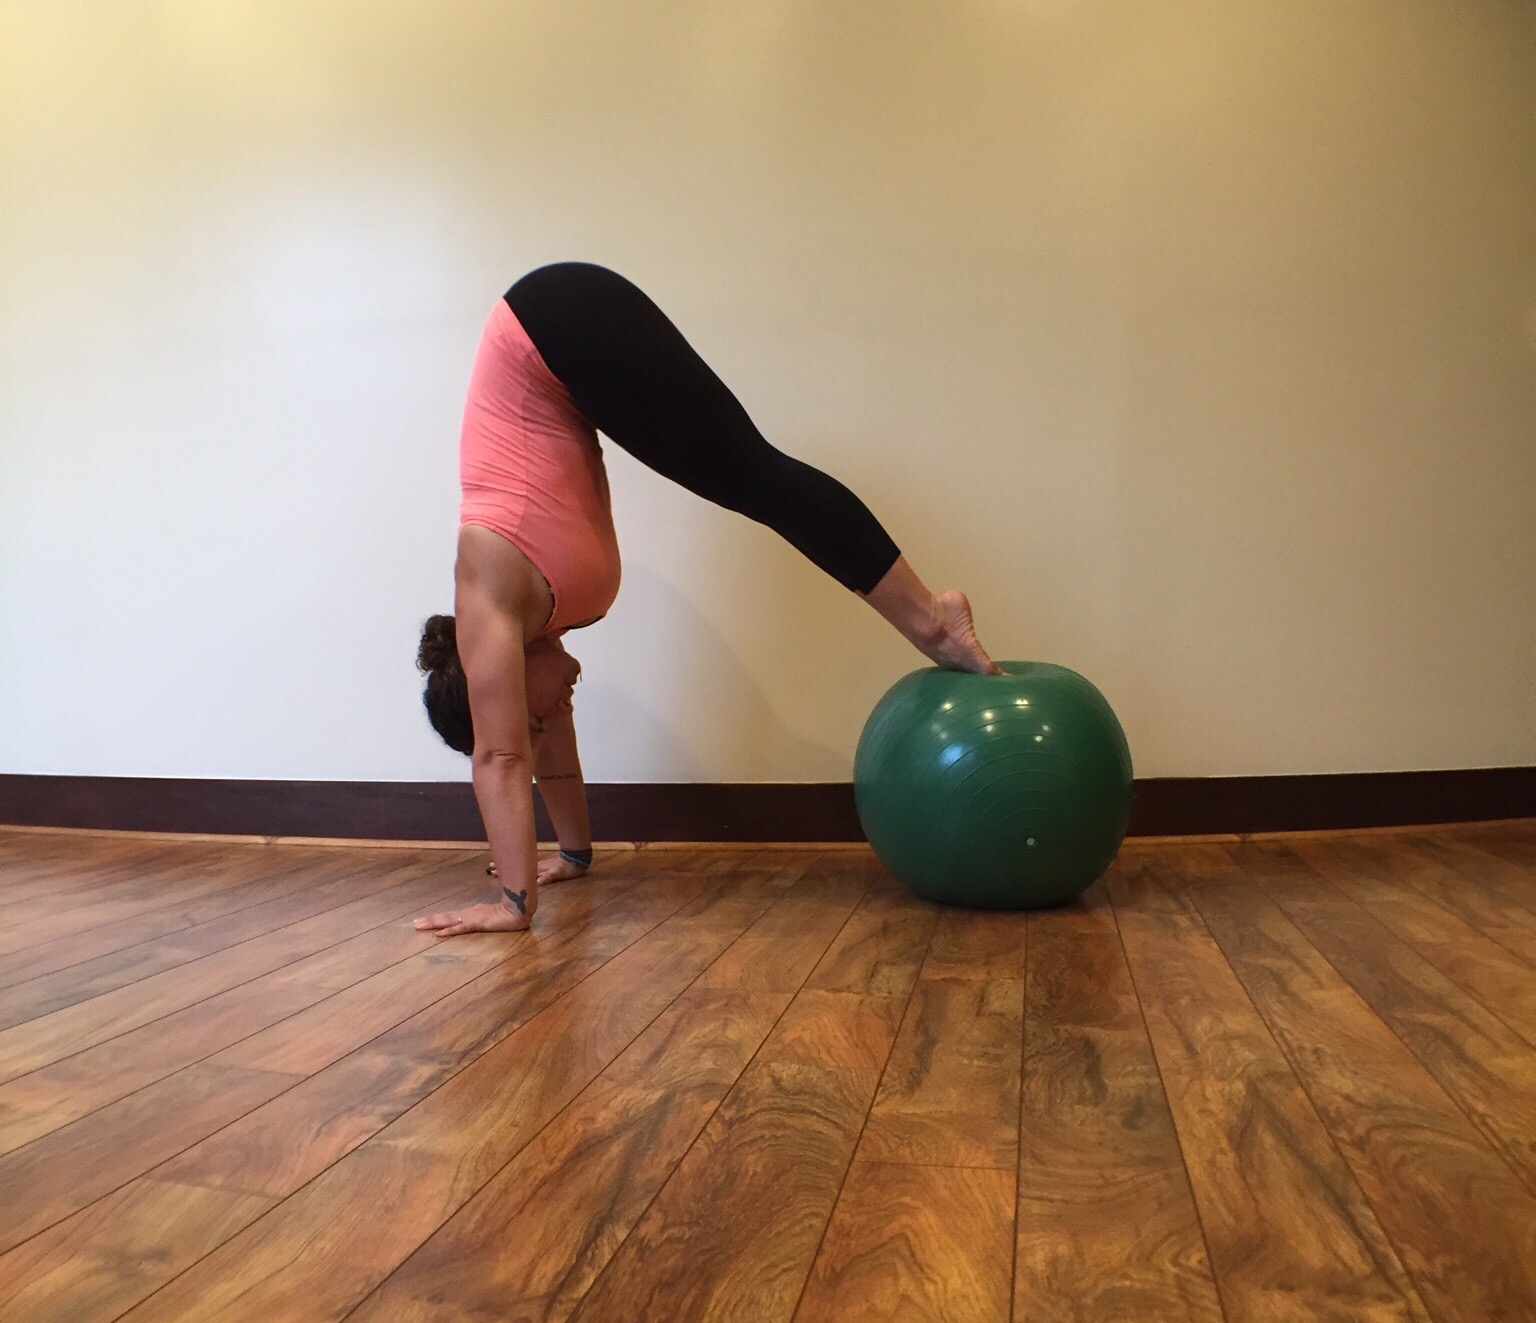 Plank Using Fit Ball And Bosu Ball: 4 Stability Ball Plank Variations For A Seriously Solid